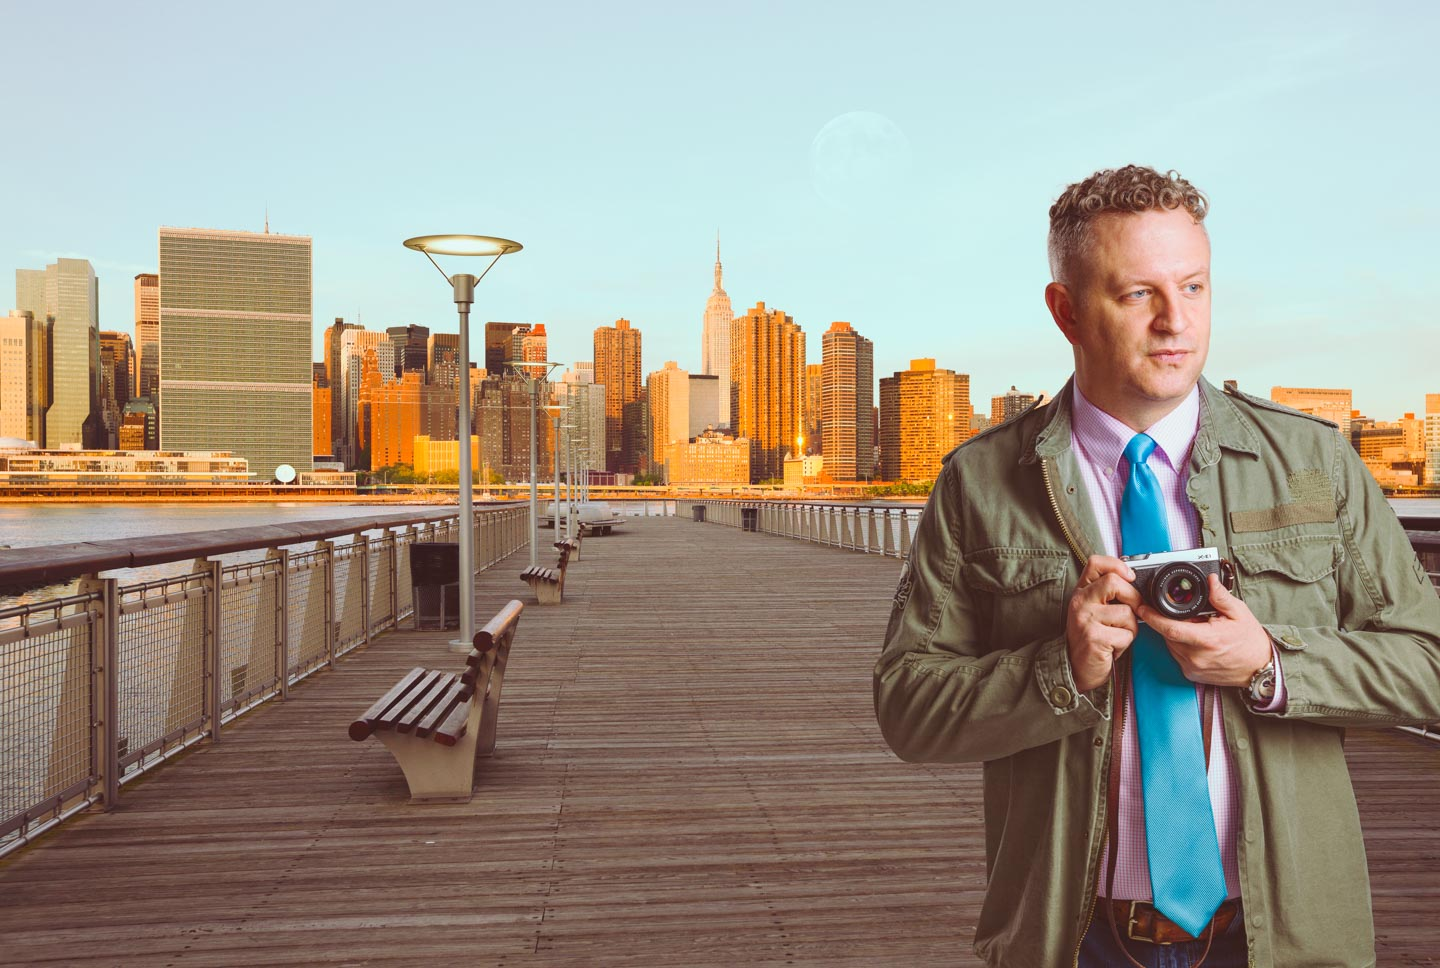 dav.d in New York thanks to Photoshop and stock photography